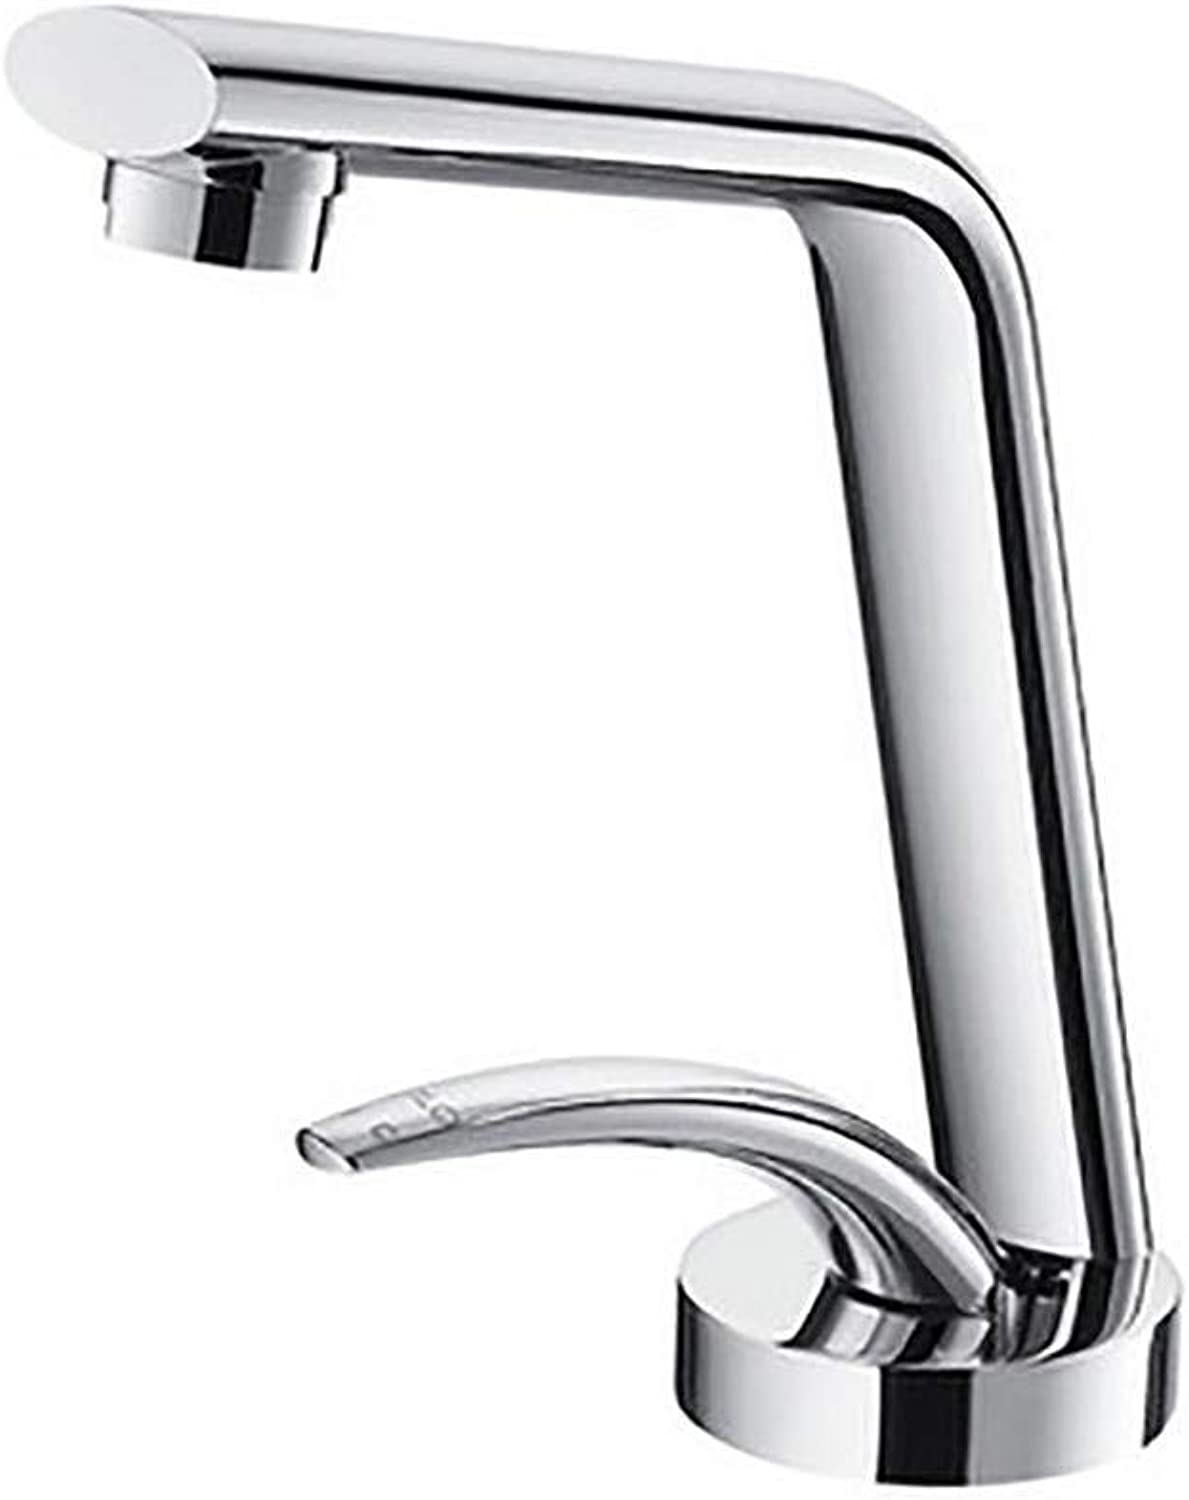 TRNMC Bathroom Sink Faucet Lavatory Basin Mixer Tap Single Lever Handle Brushed Nickel Personality Creative, Photo color